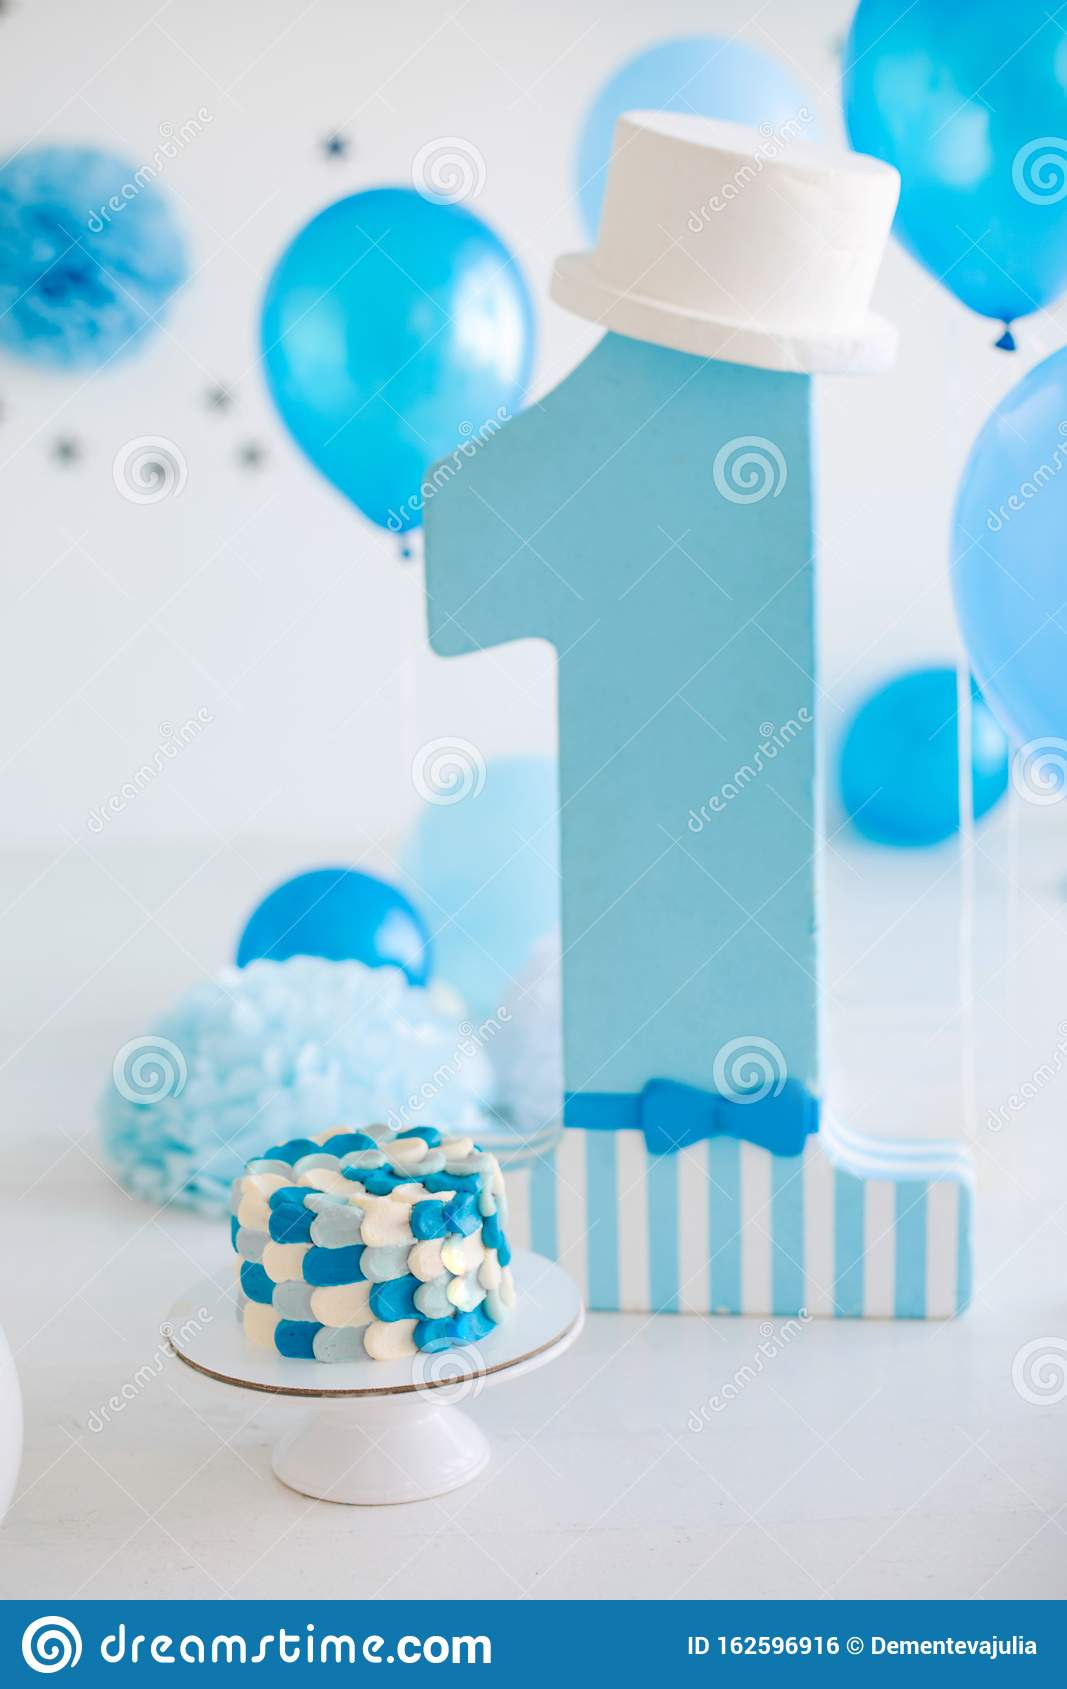 Admirable First Birthday Cake For Boy Stock Photo Image Of Dessert Funny Birthday Cards Online Alyptdamsfinfo